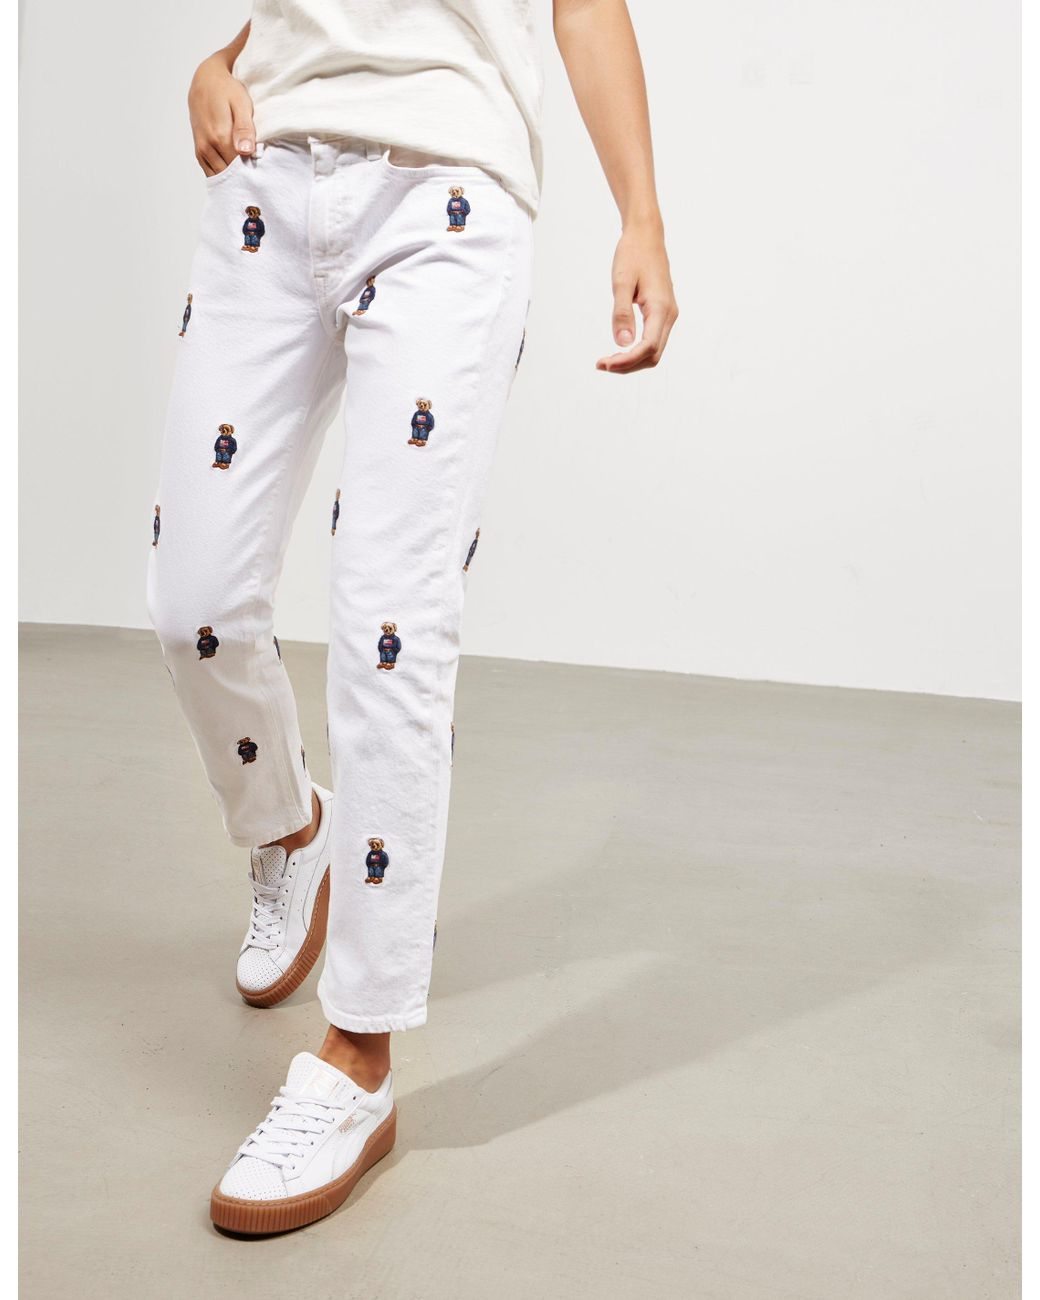 39bc27cb60 Polo Ralph Lauren Cropped Bear Jeans - Online Exclusive White in ...